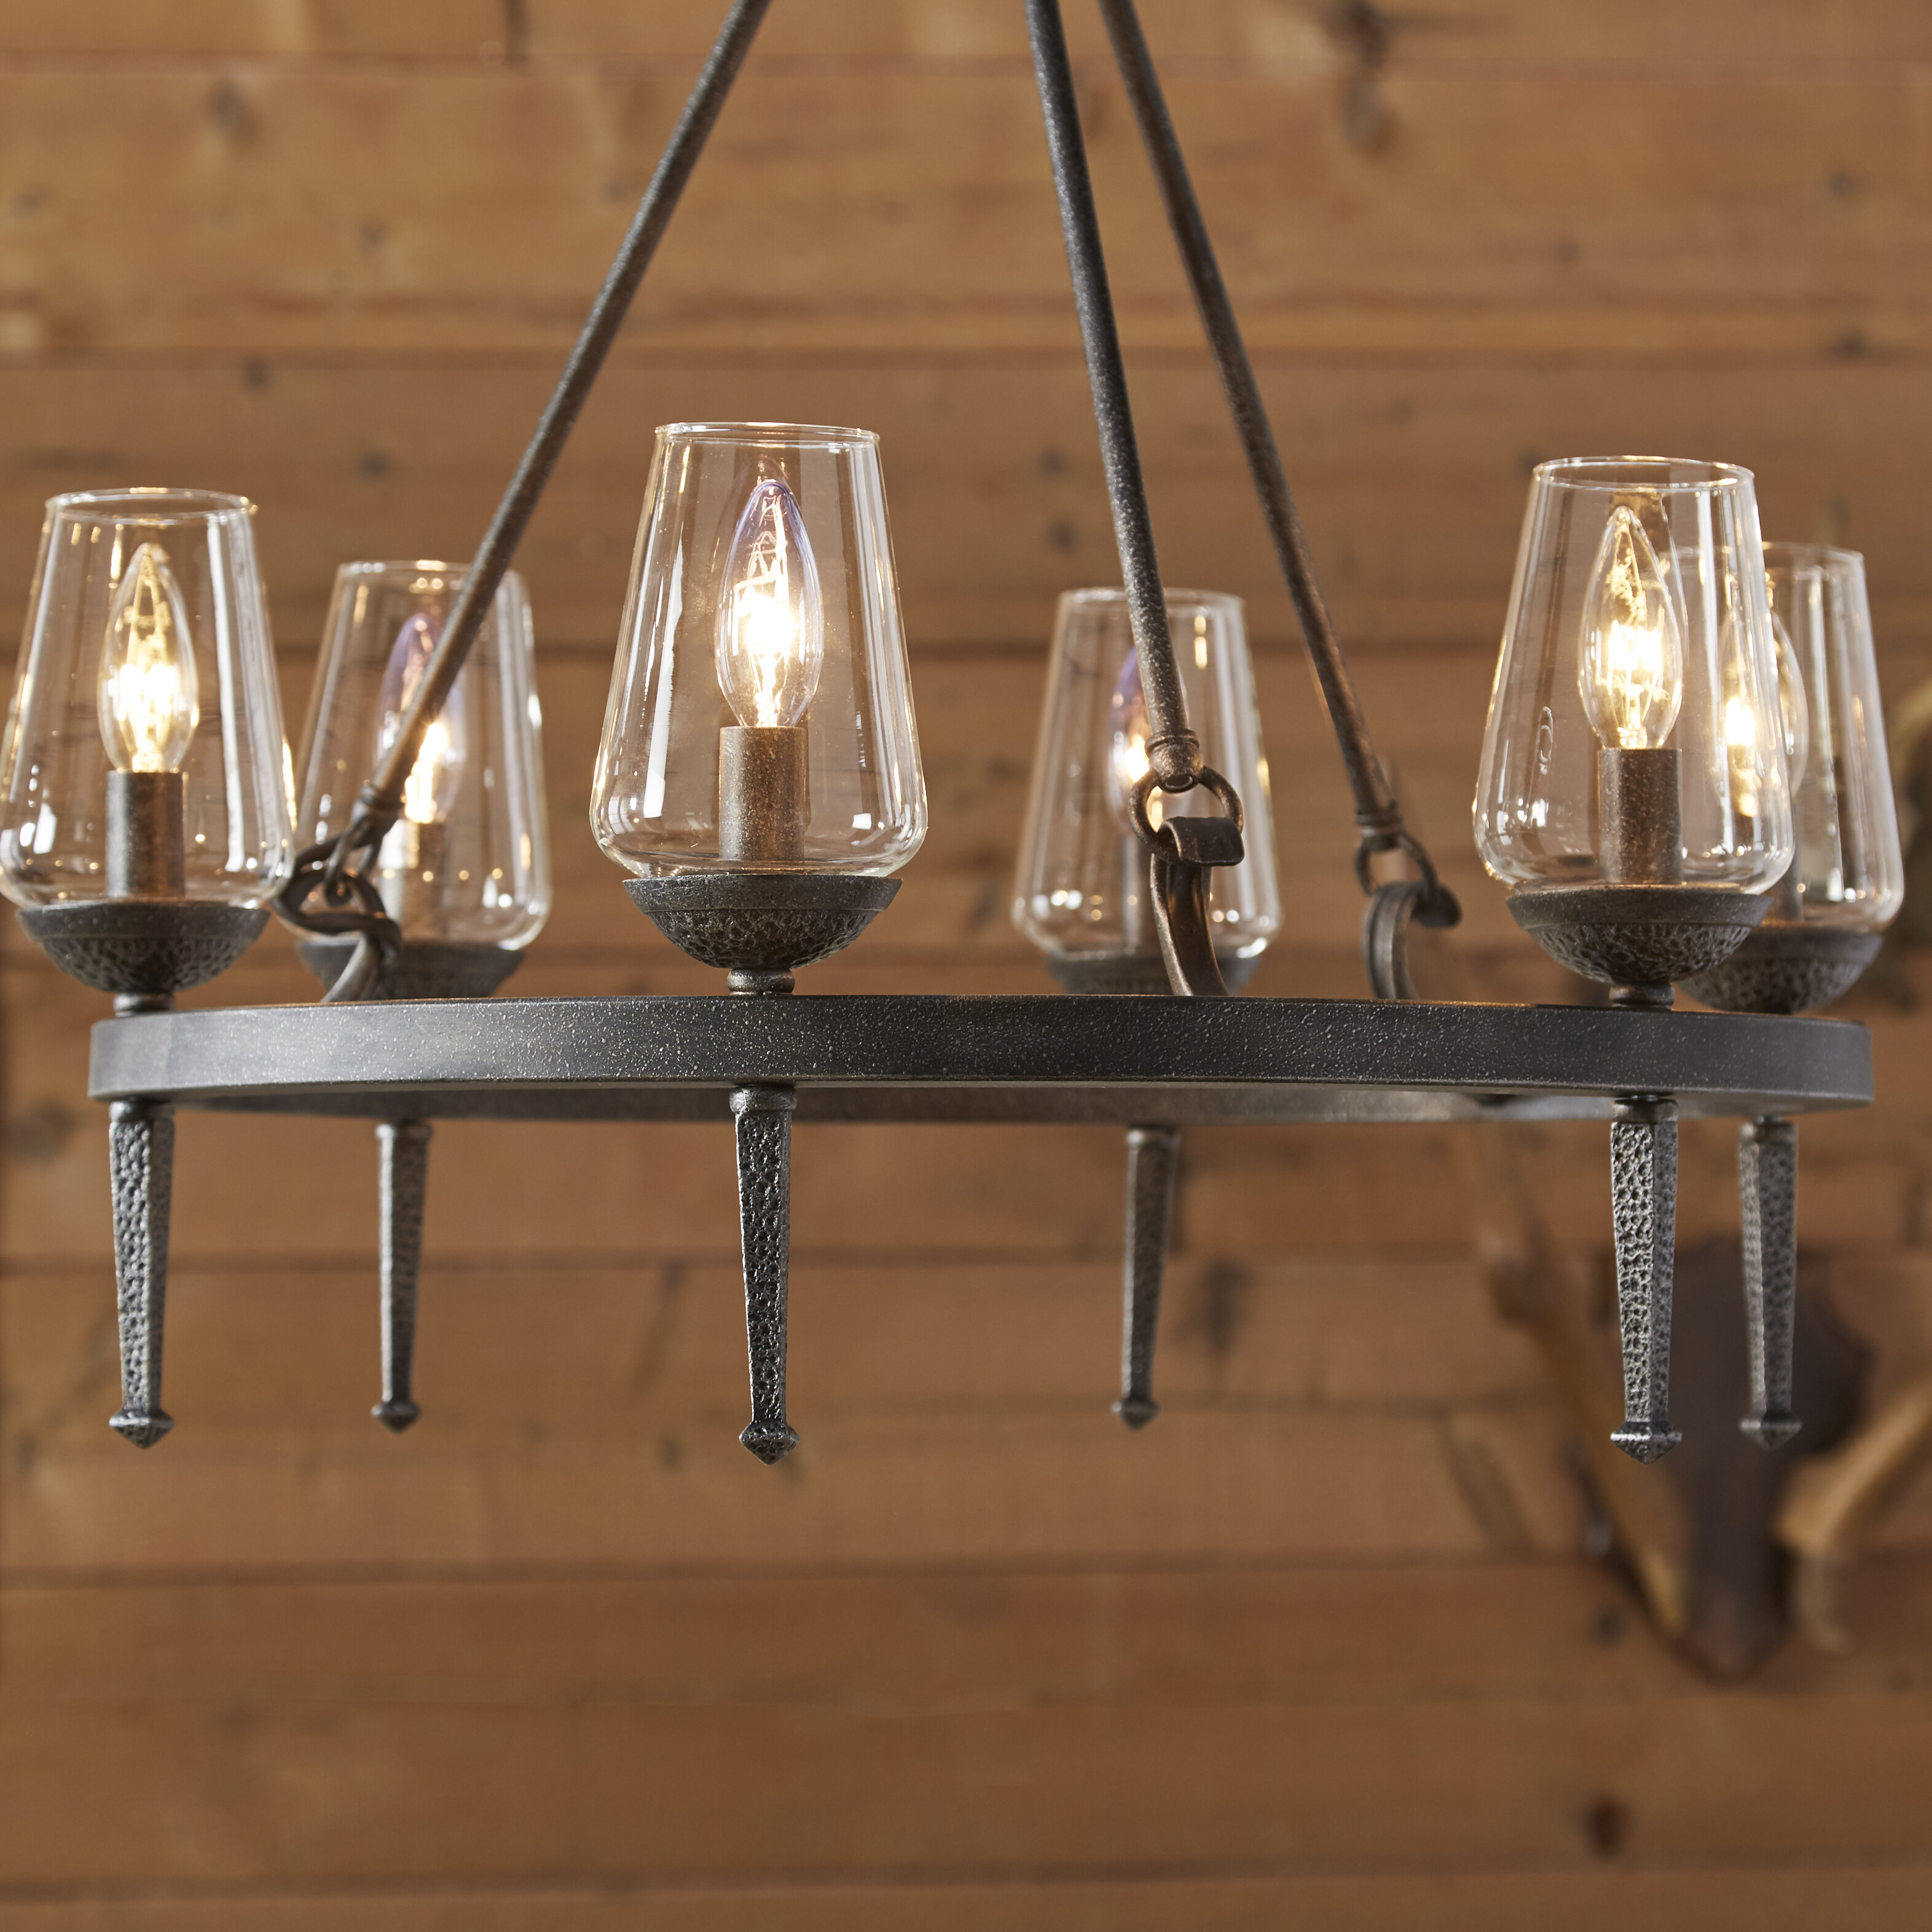 light alsace birch lane style reviews pdp fashioned candle lighting chandelier old